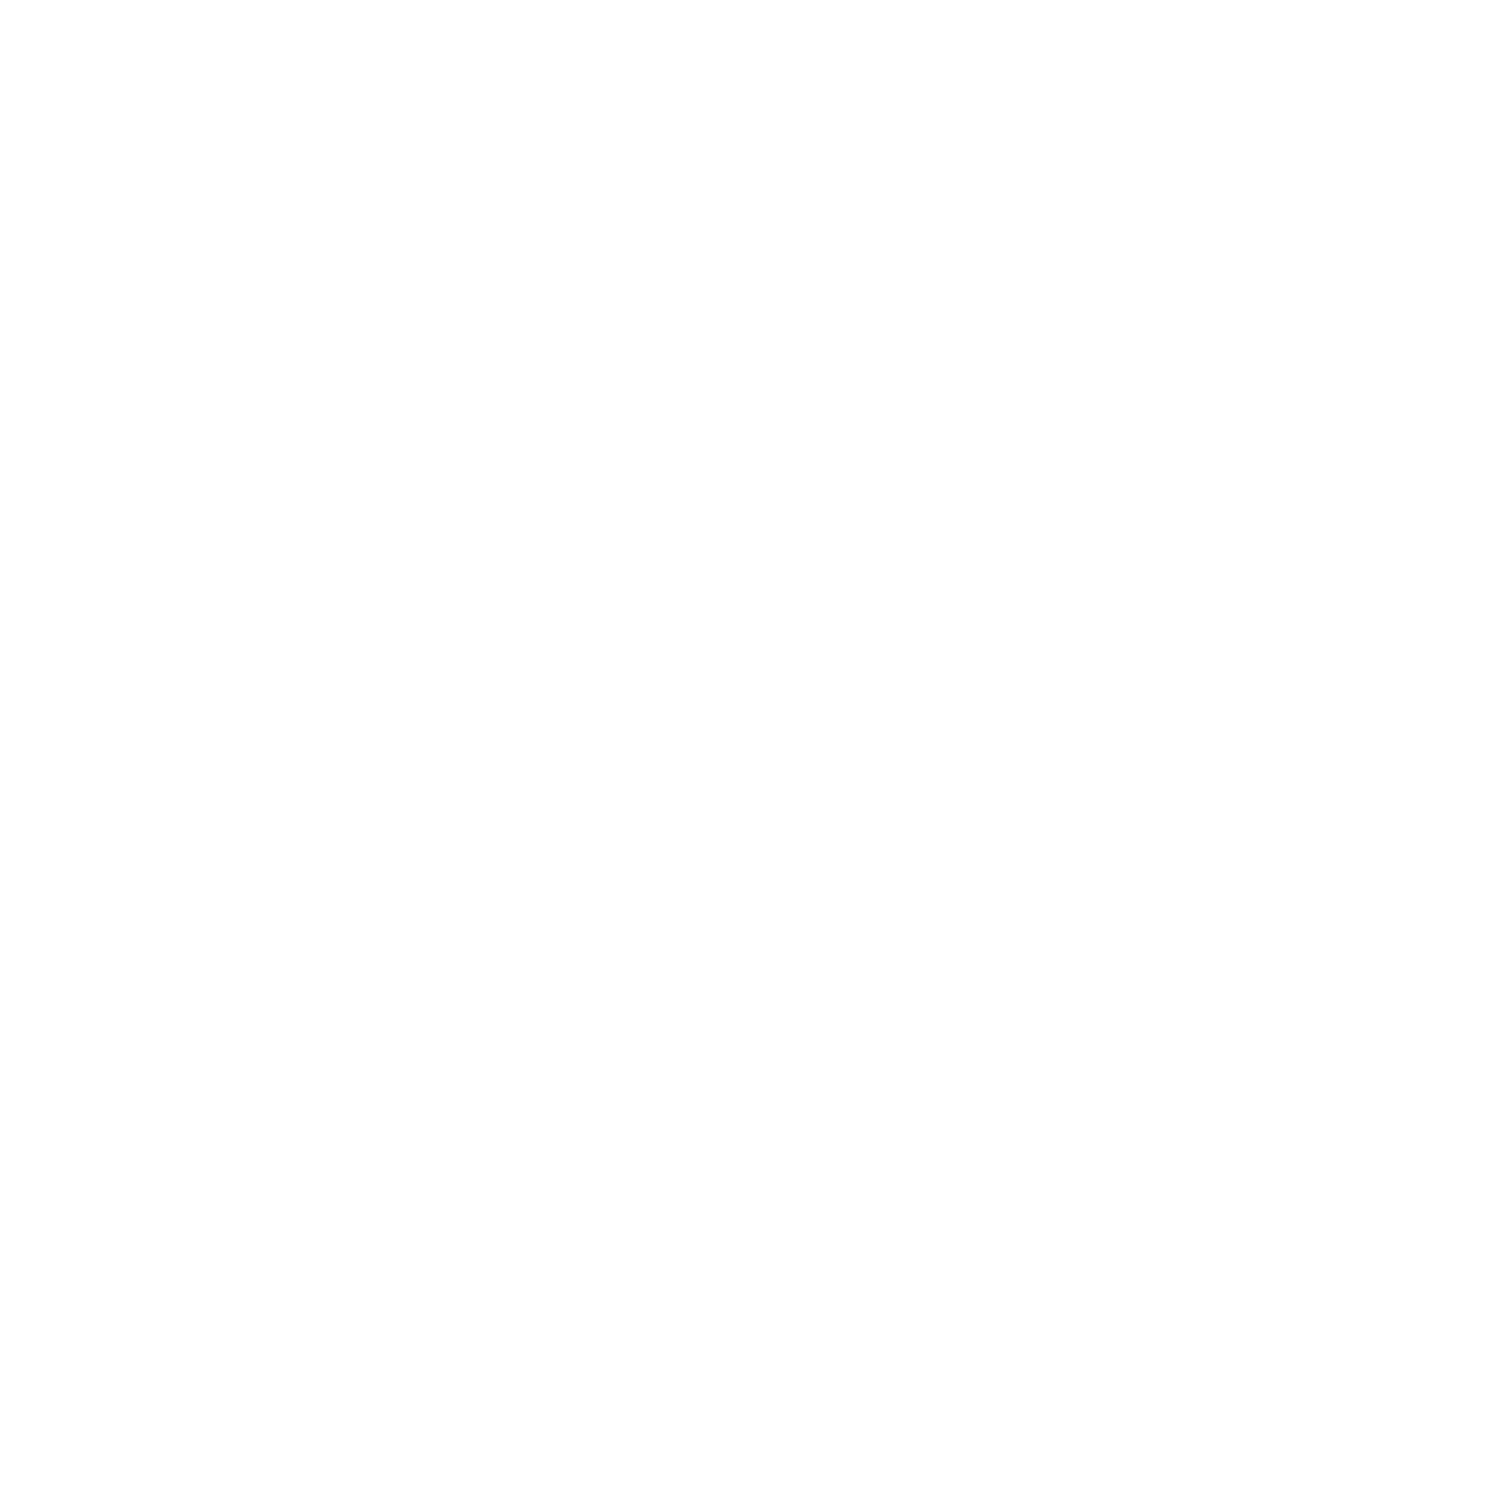 Taylor Farmhouse Cafe